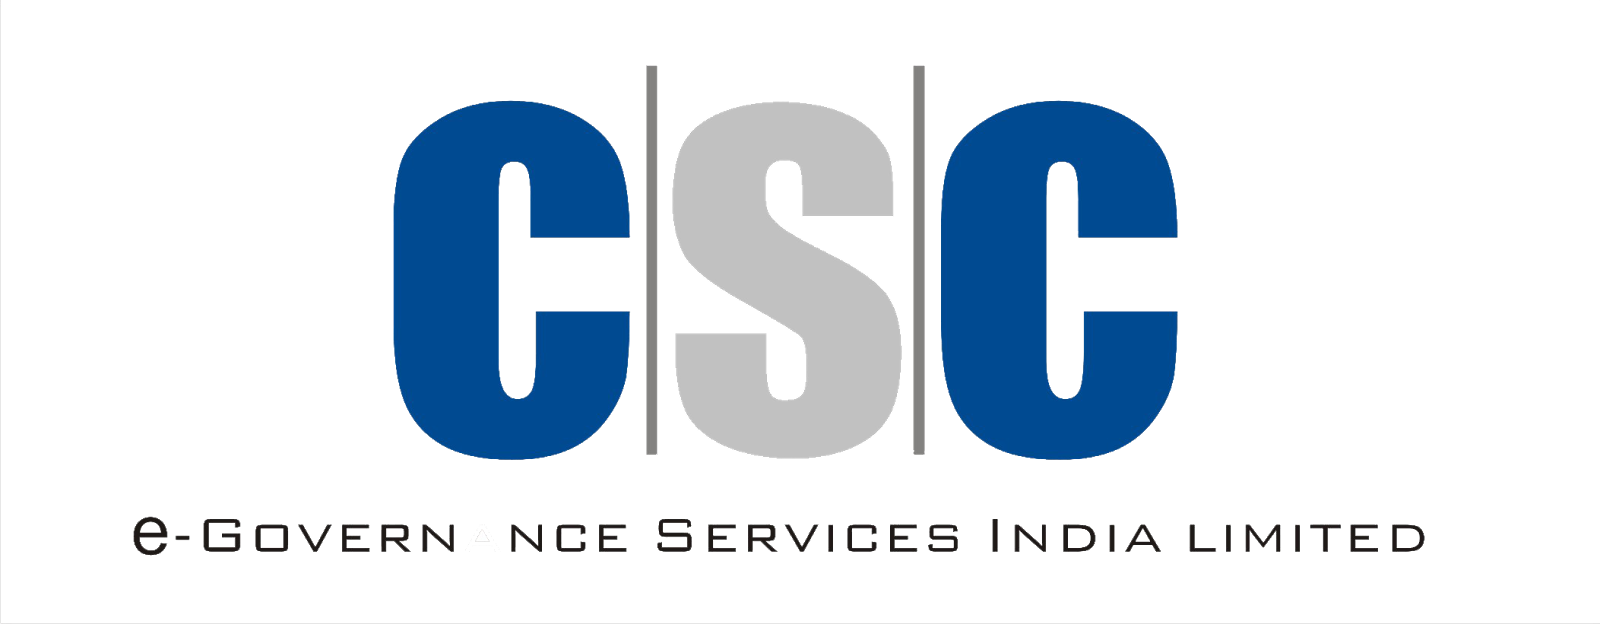 Image result for csc logo Create jobs, Agent of change